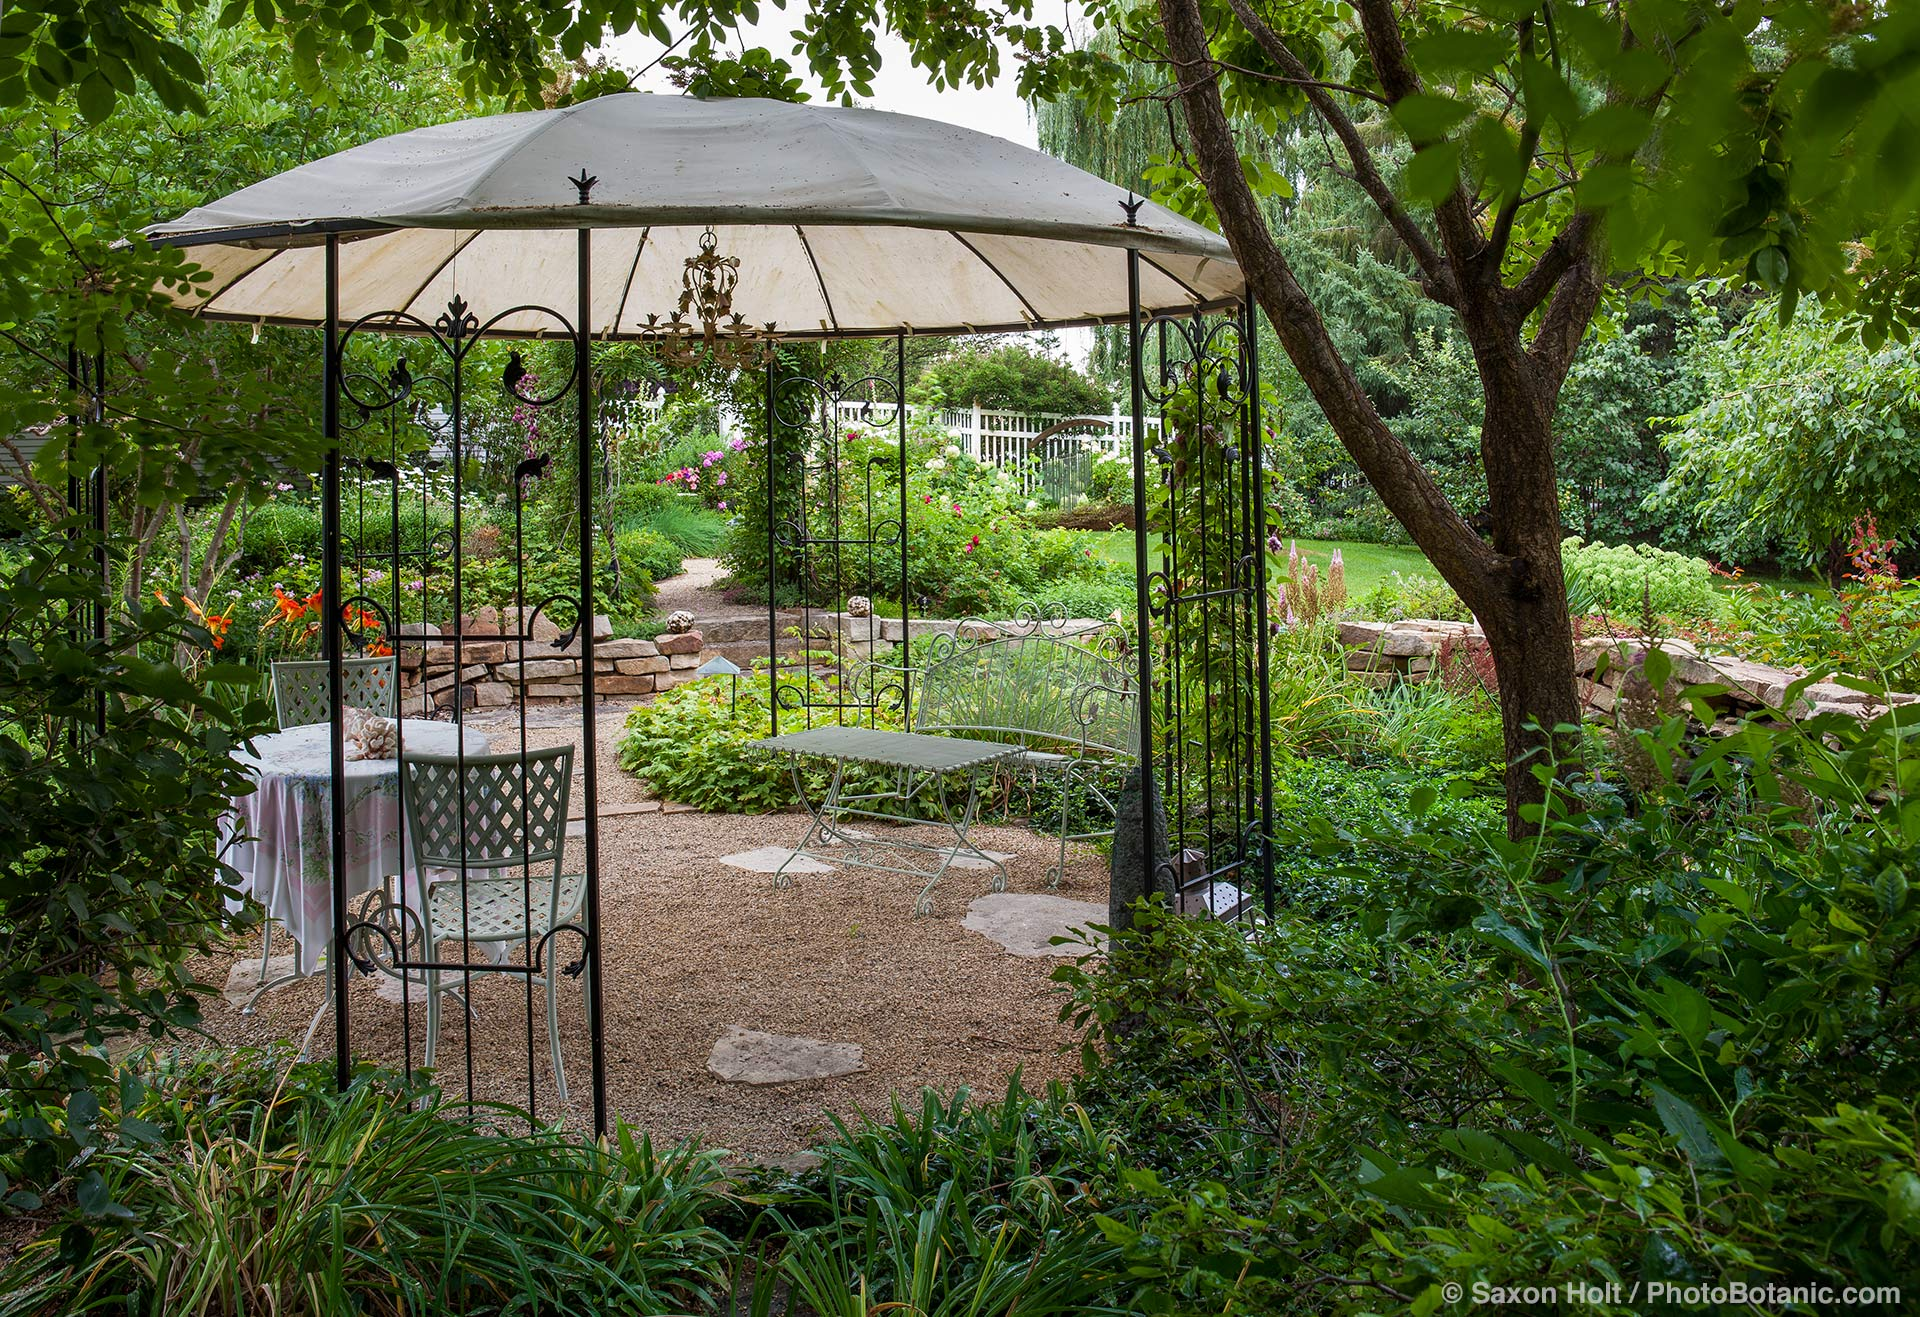 Free standing pergola over gravel patio with intimate dining area in Minnesota summer garden